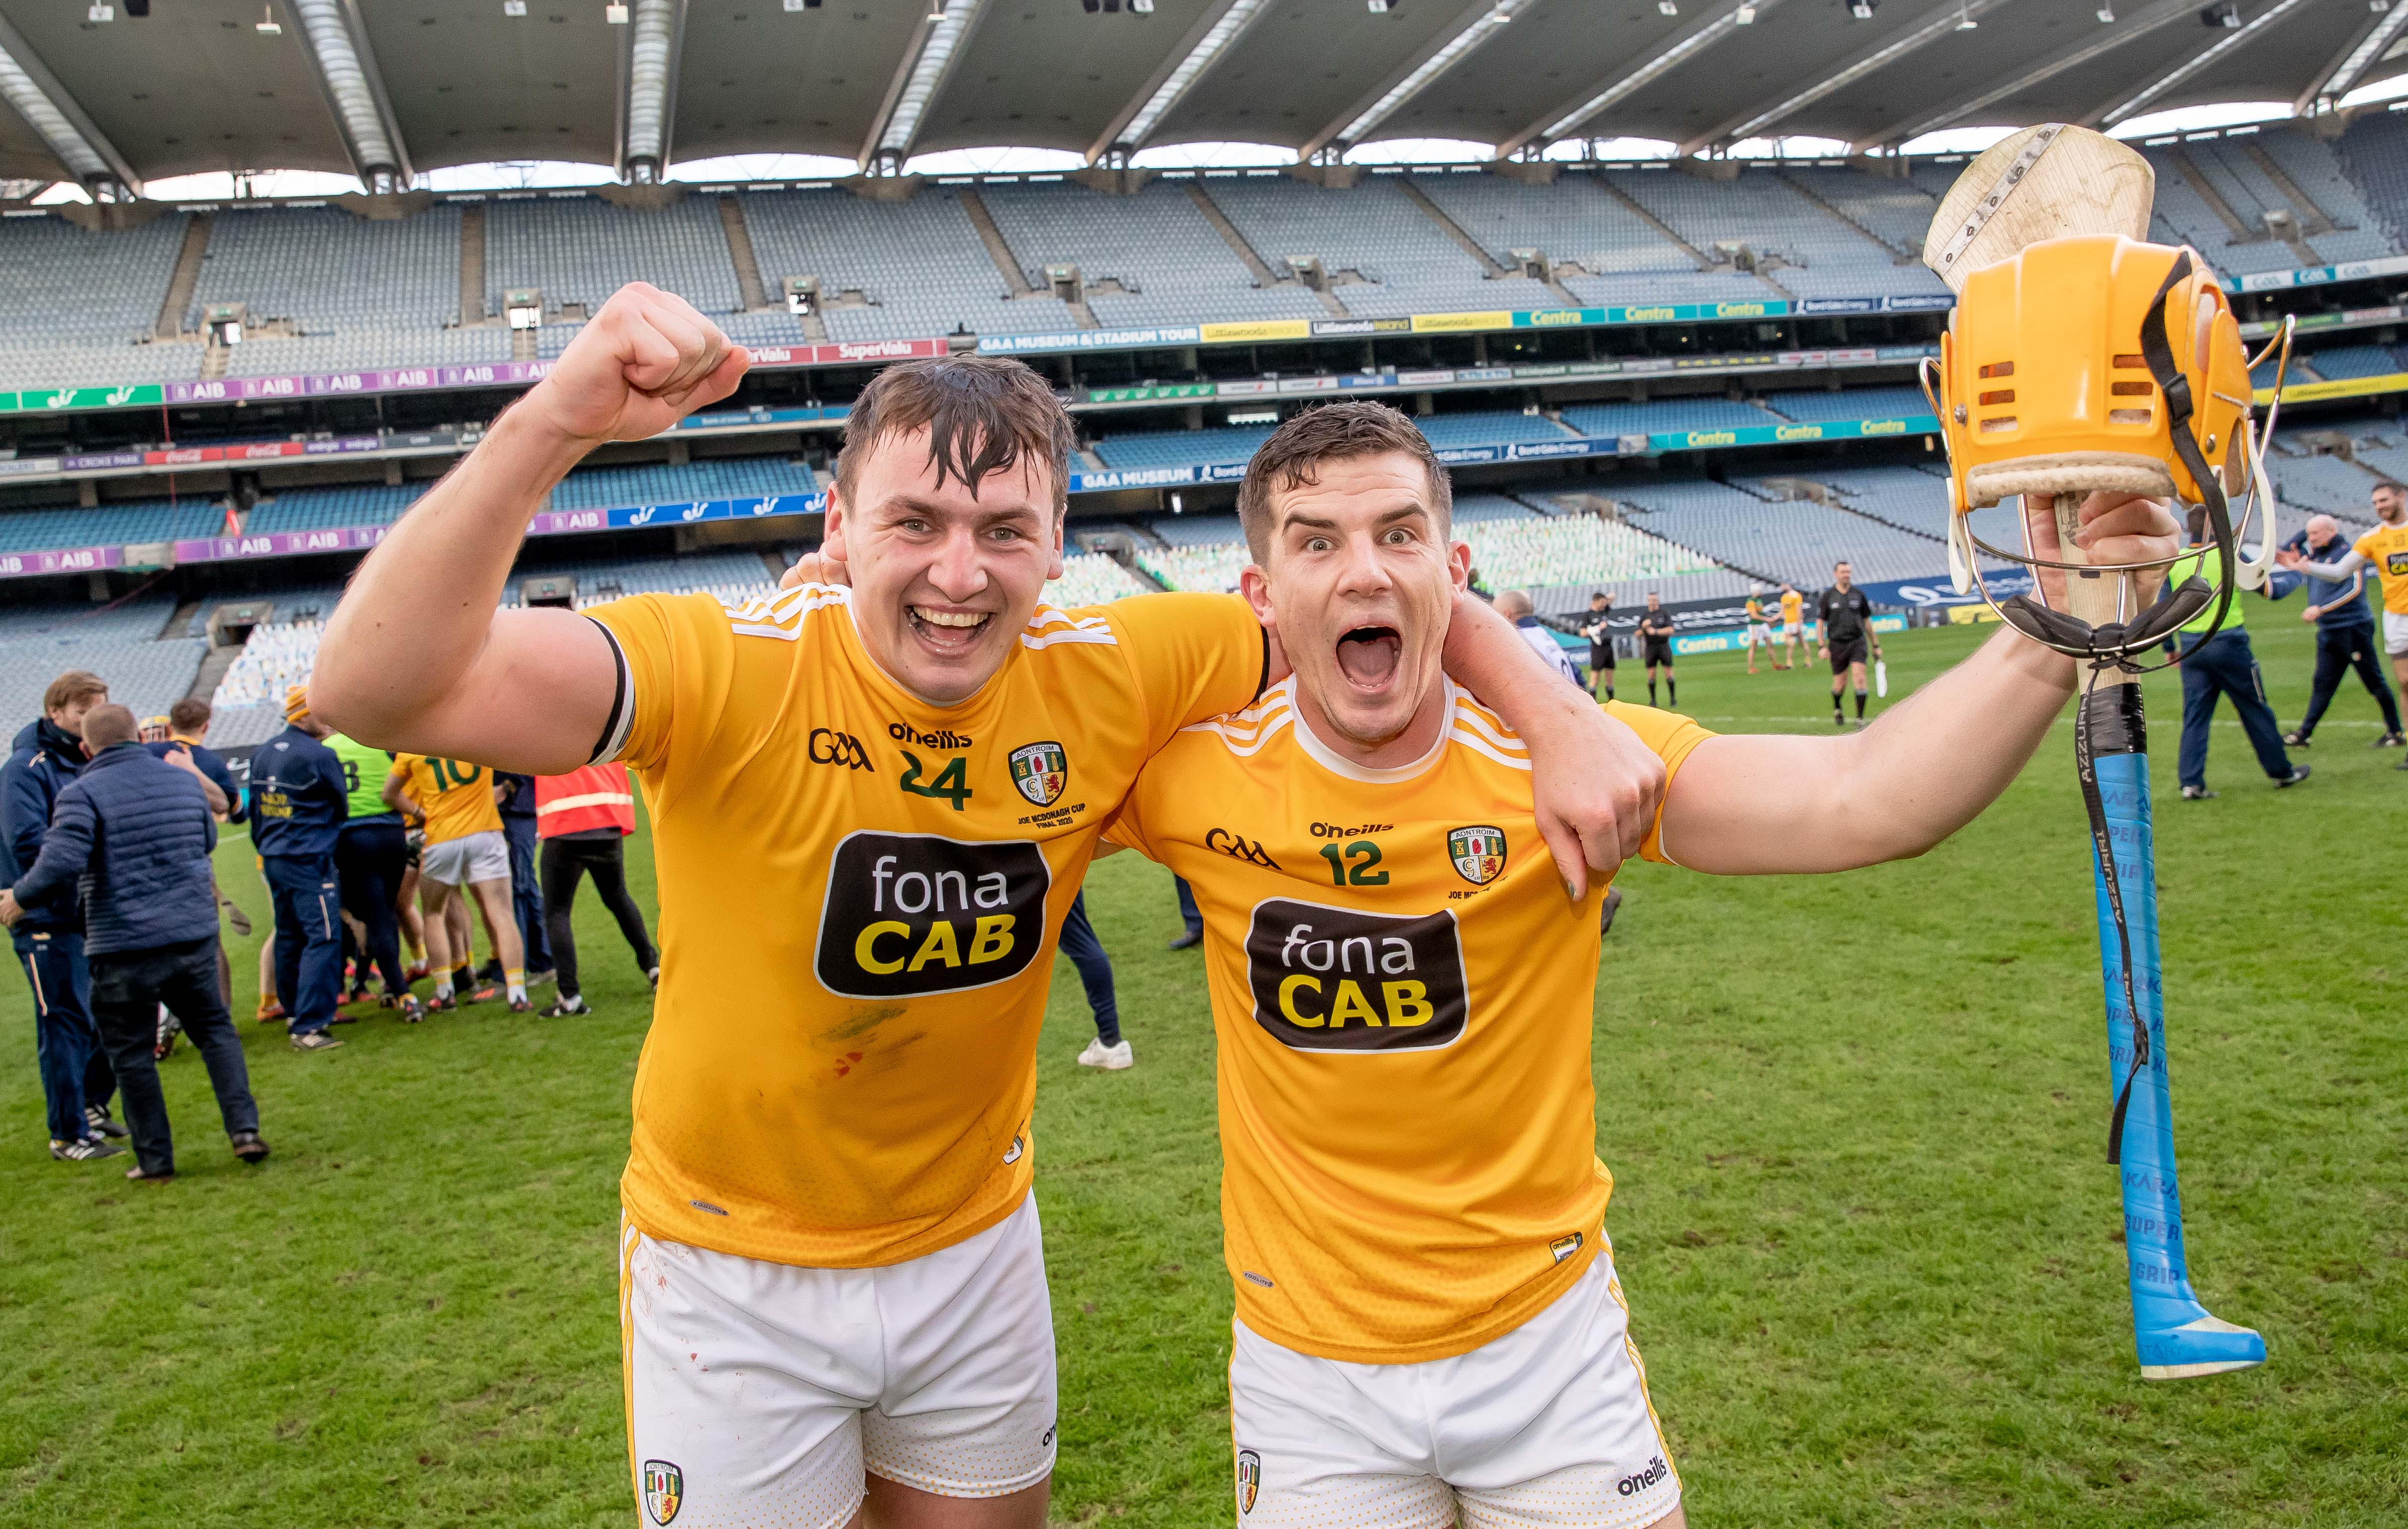 Antrim's hurlers can look forward to Division One hurling in 2021